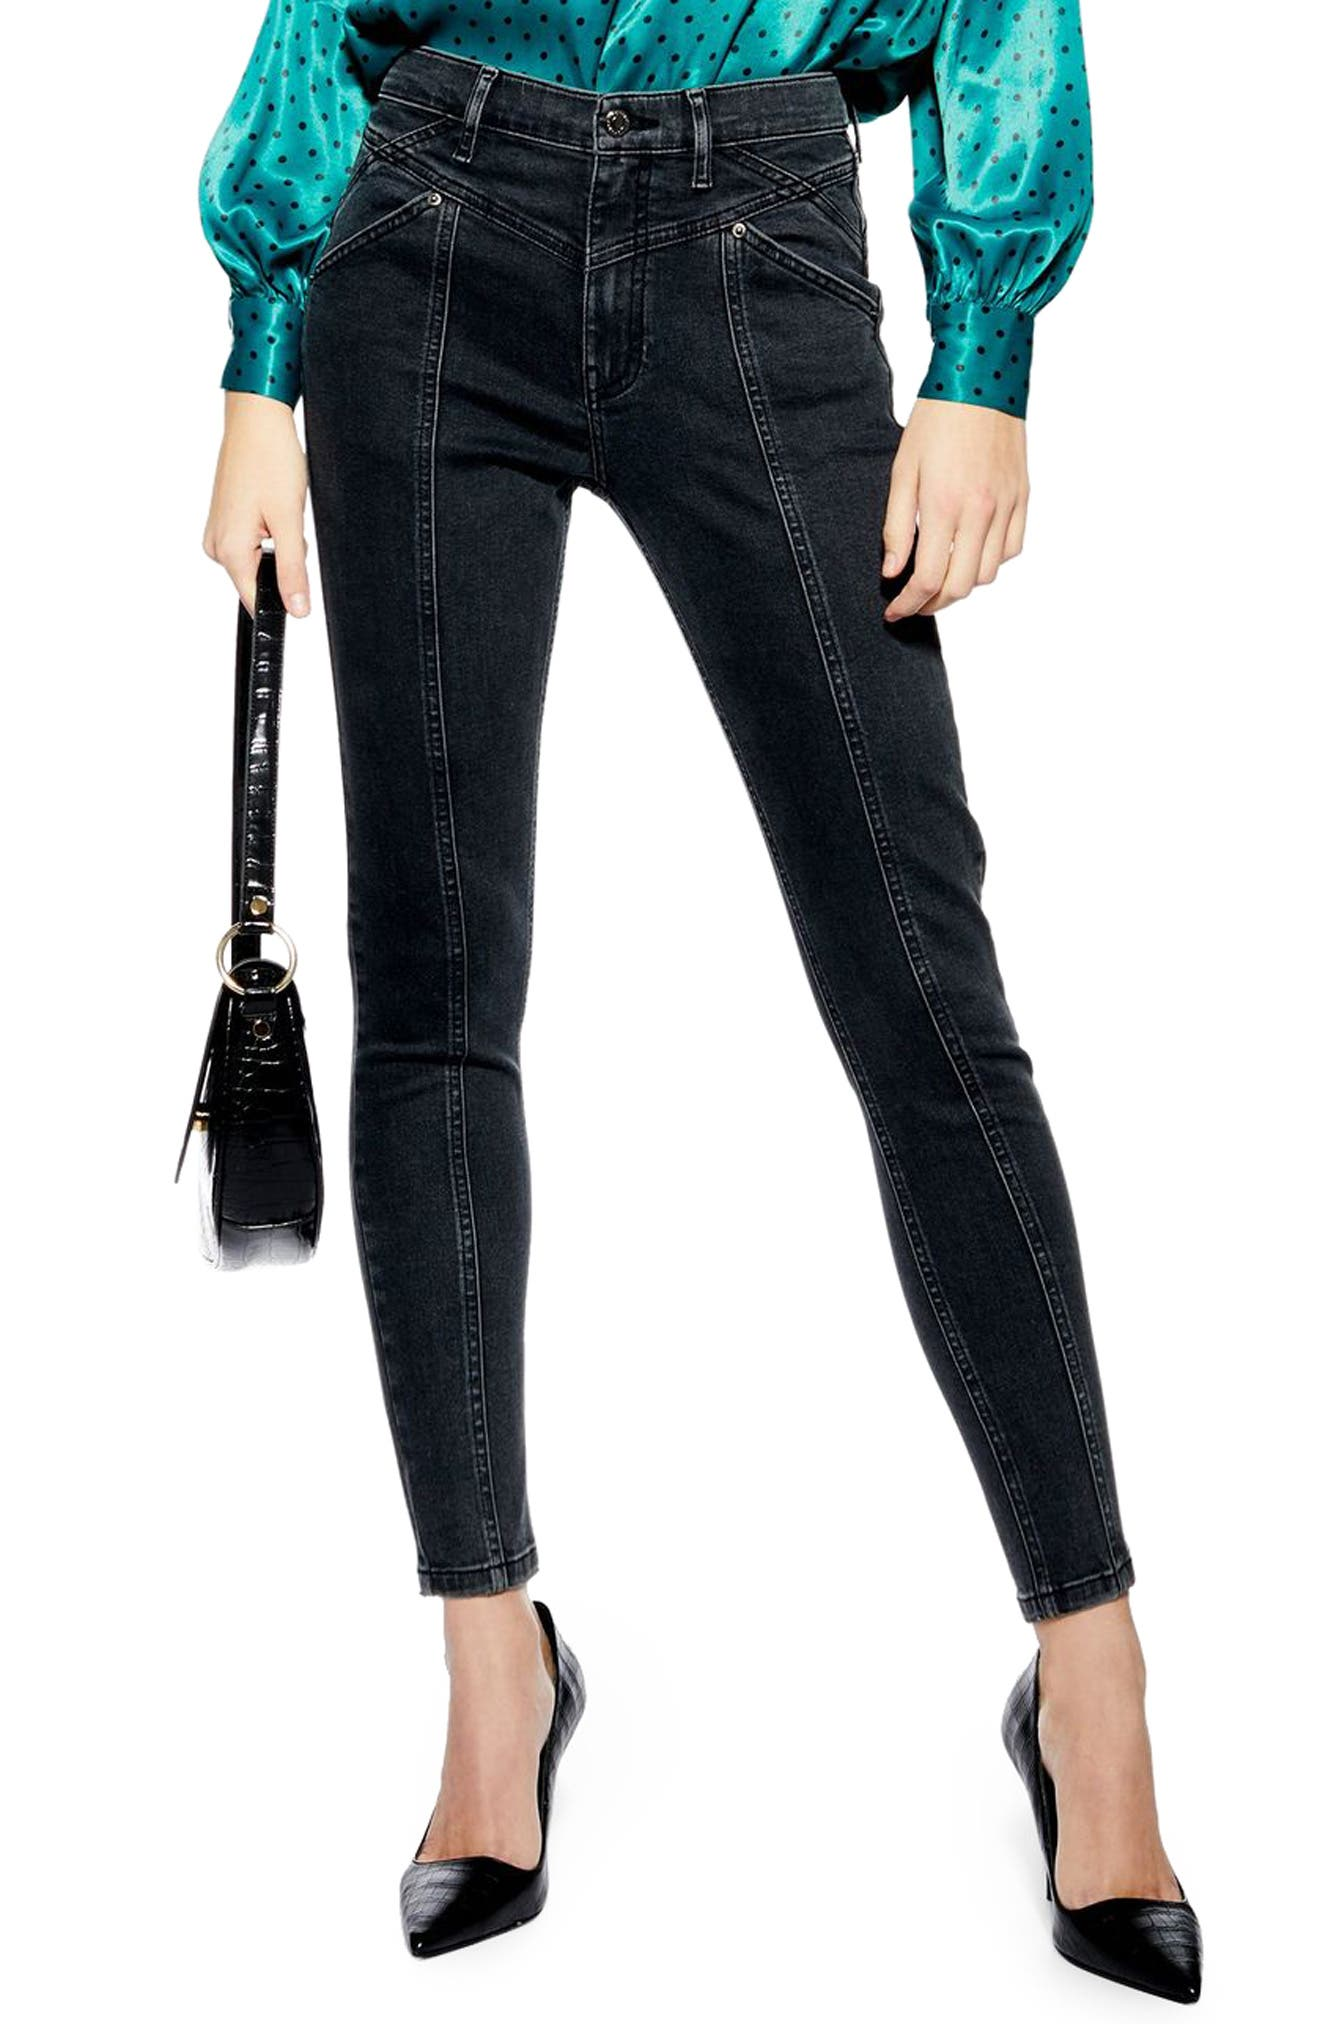 TOPSHOP, Jamie Panel High Waist Skinny Jeans, Main thumbnail 1, color, WASHED BLACK